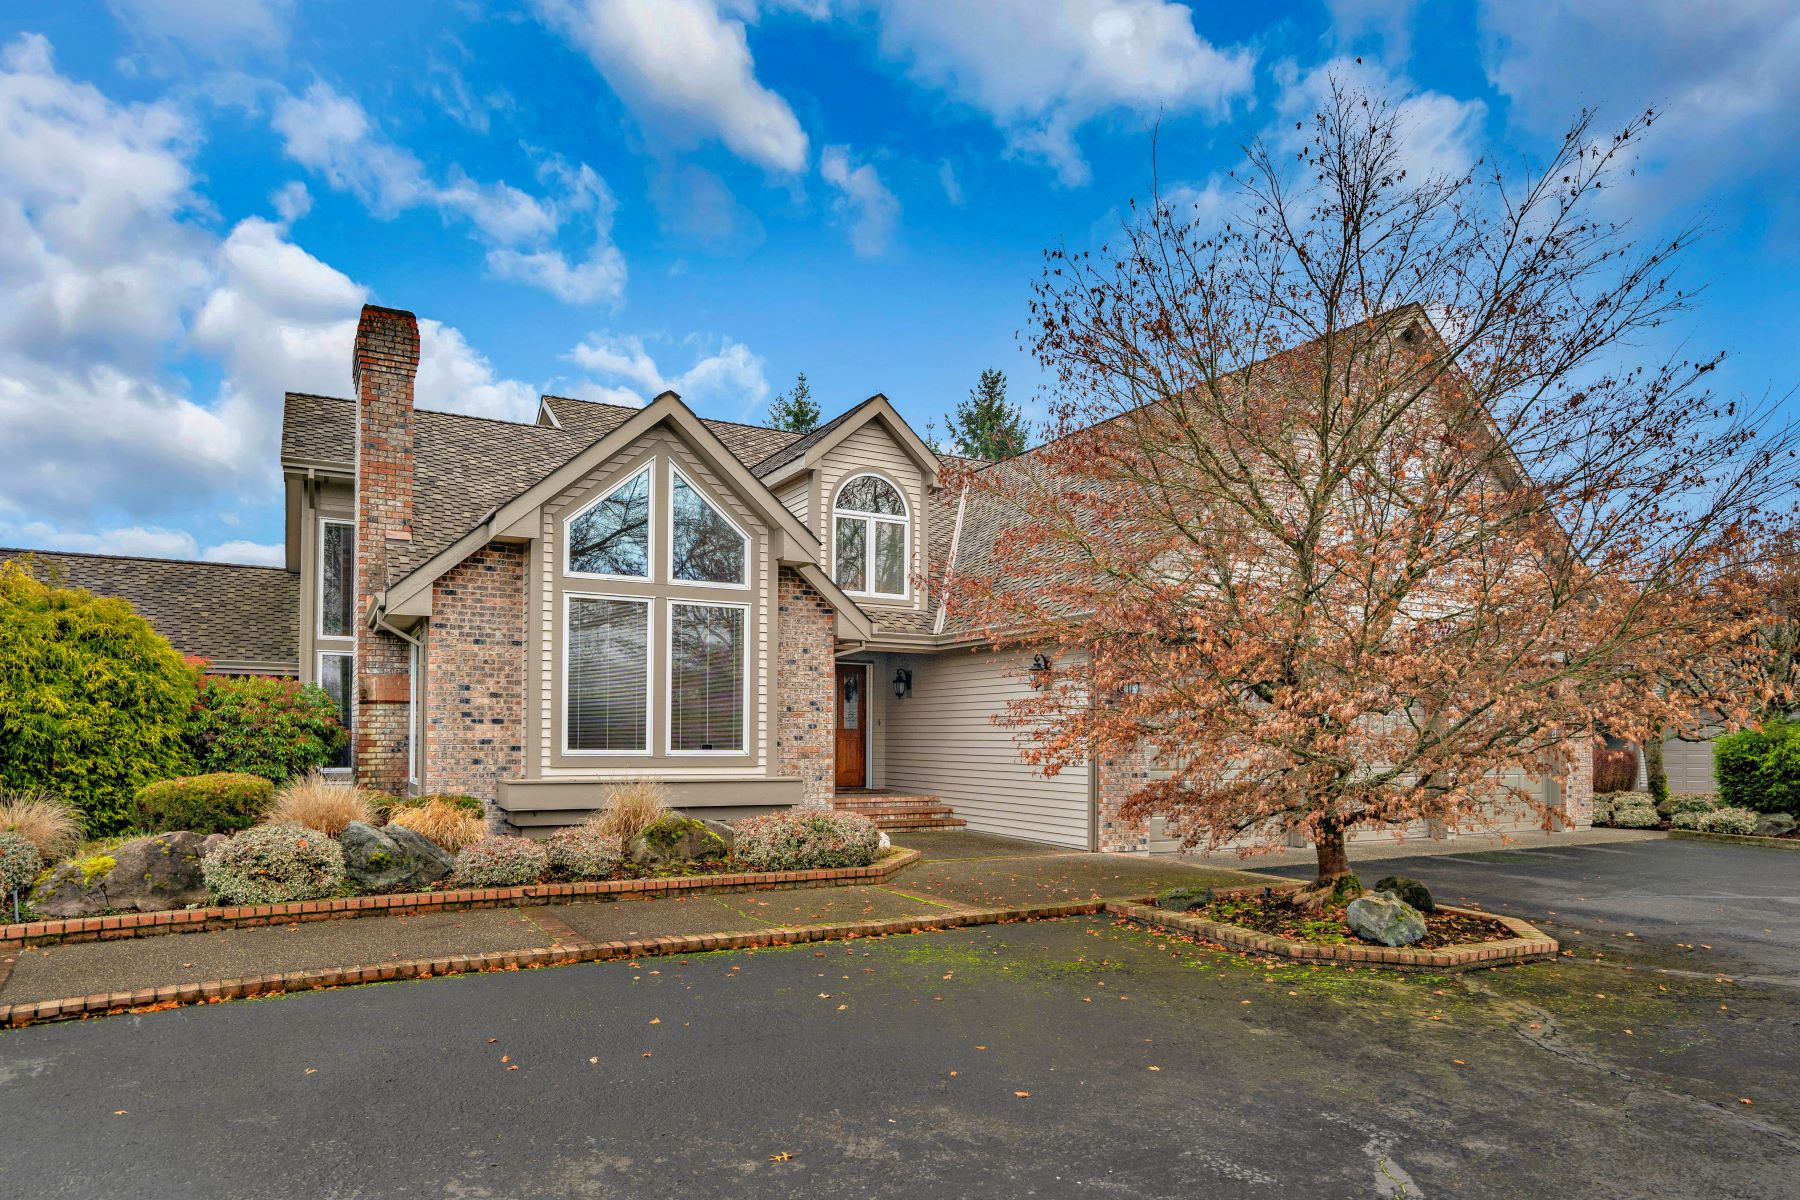 Single Family Homes for Sale at ElkPlainRanch.com 26419 12th Ave Ct E Spanaway, Washington 98387 United States